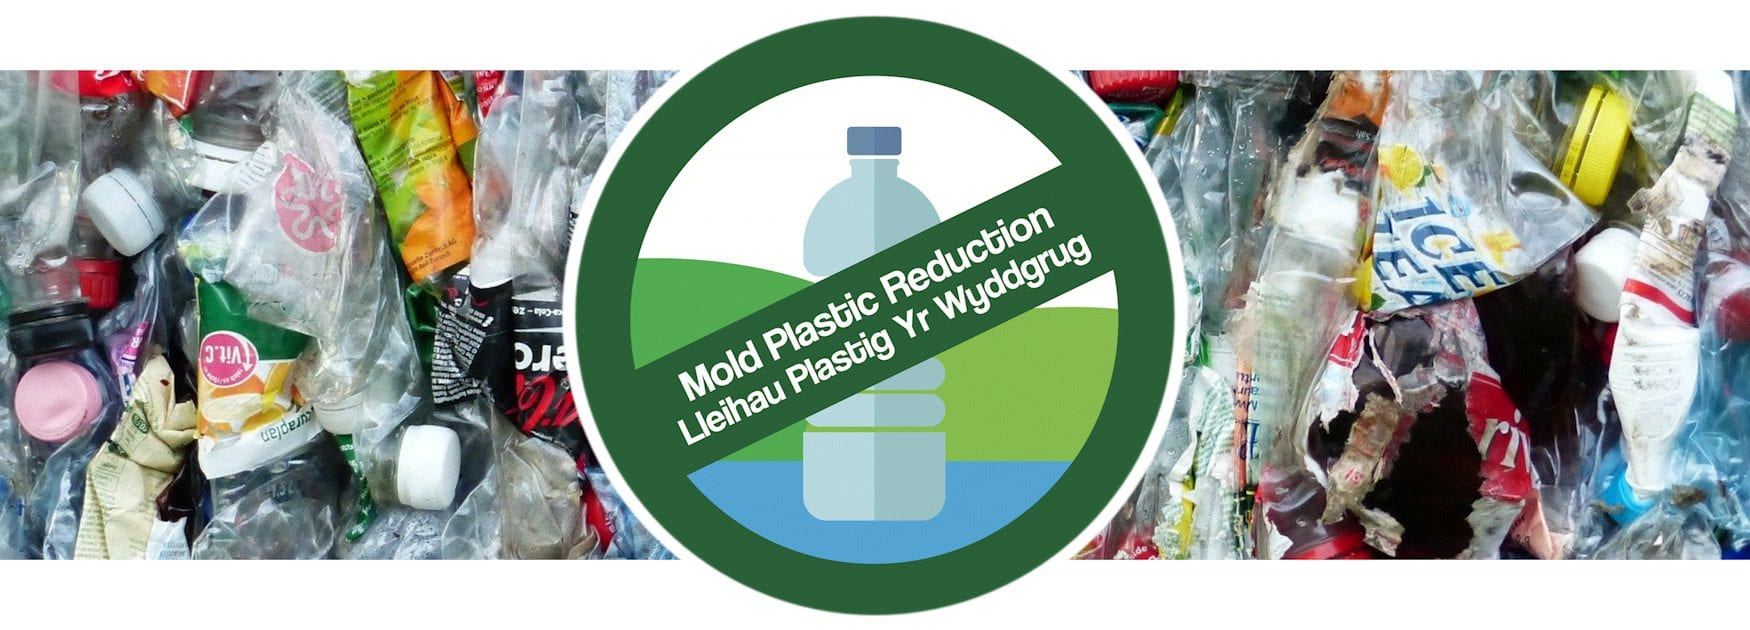 Header image for Where to Recycle page showing plastic bottles, plastic packaging and similar plastic waste